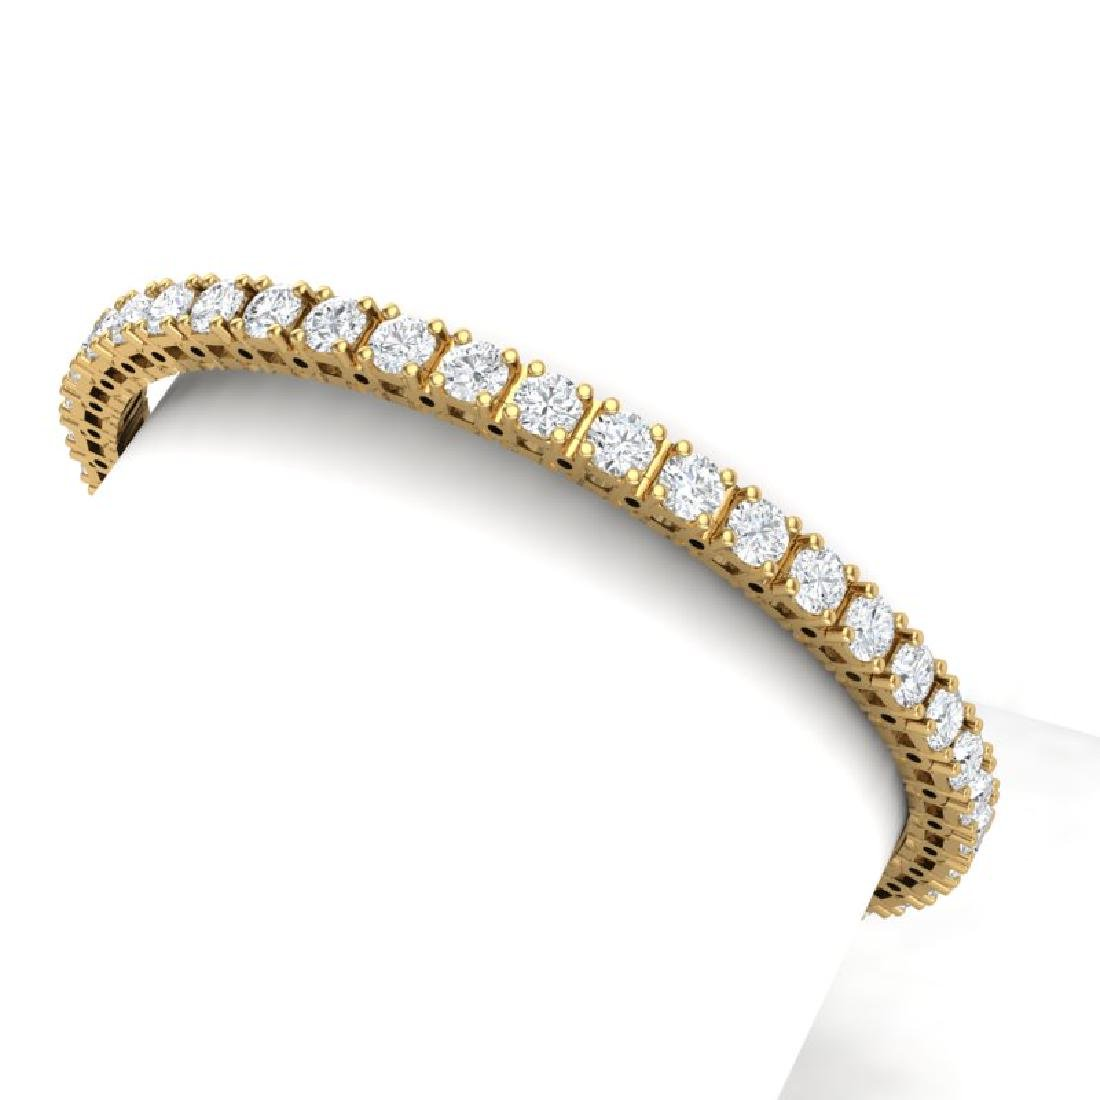 10 CTW Certified VS/SI Diamond Bracelet 18K Yellow Gold